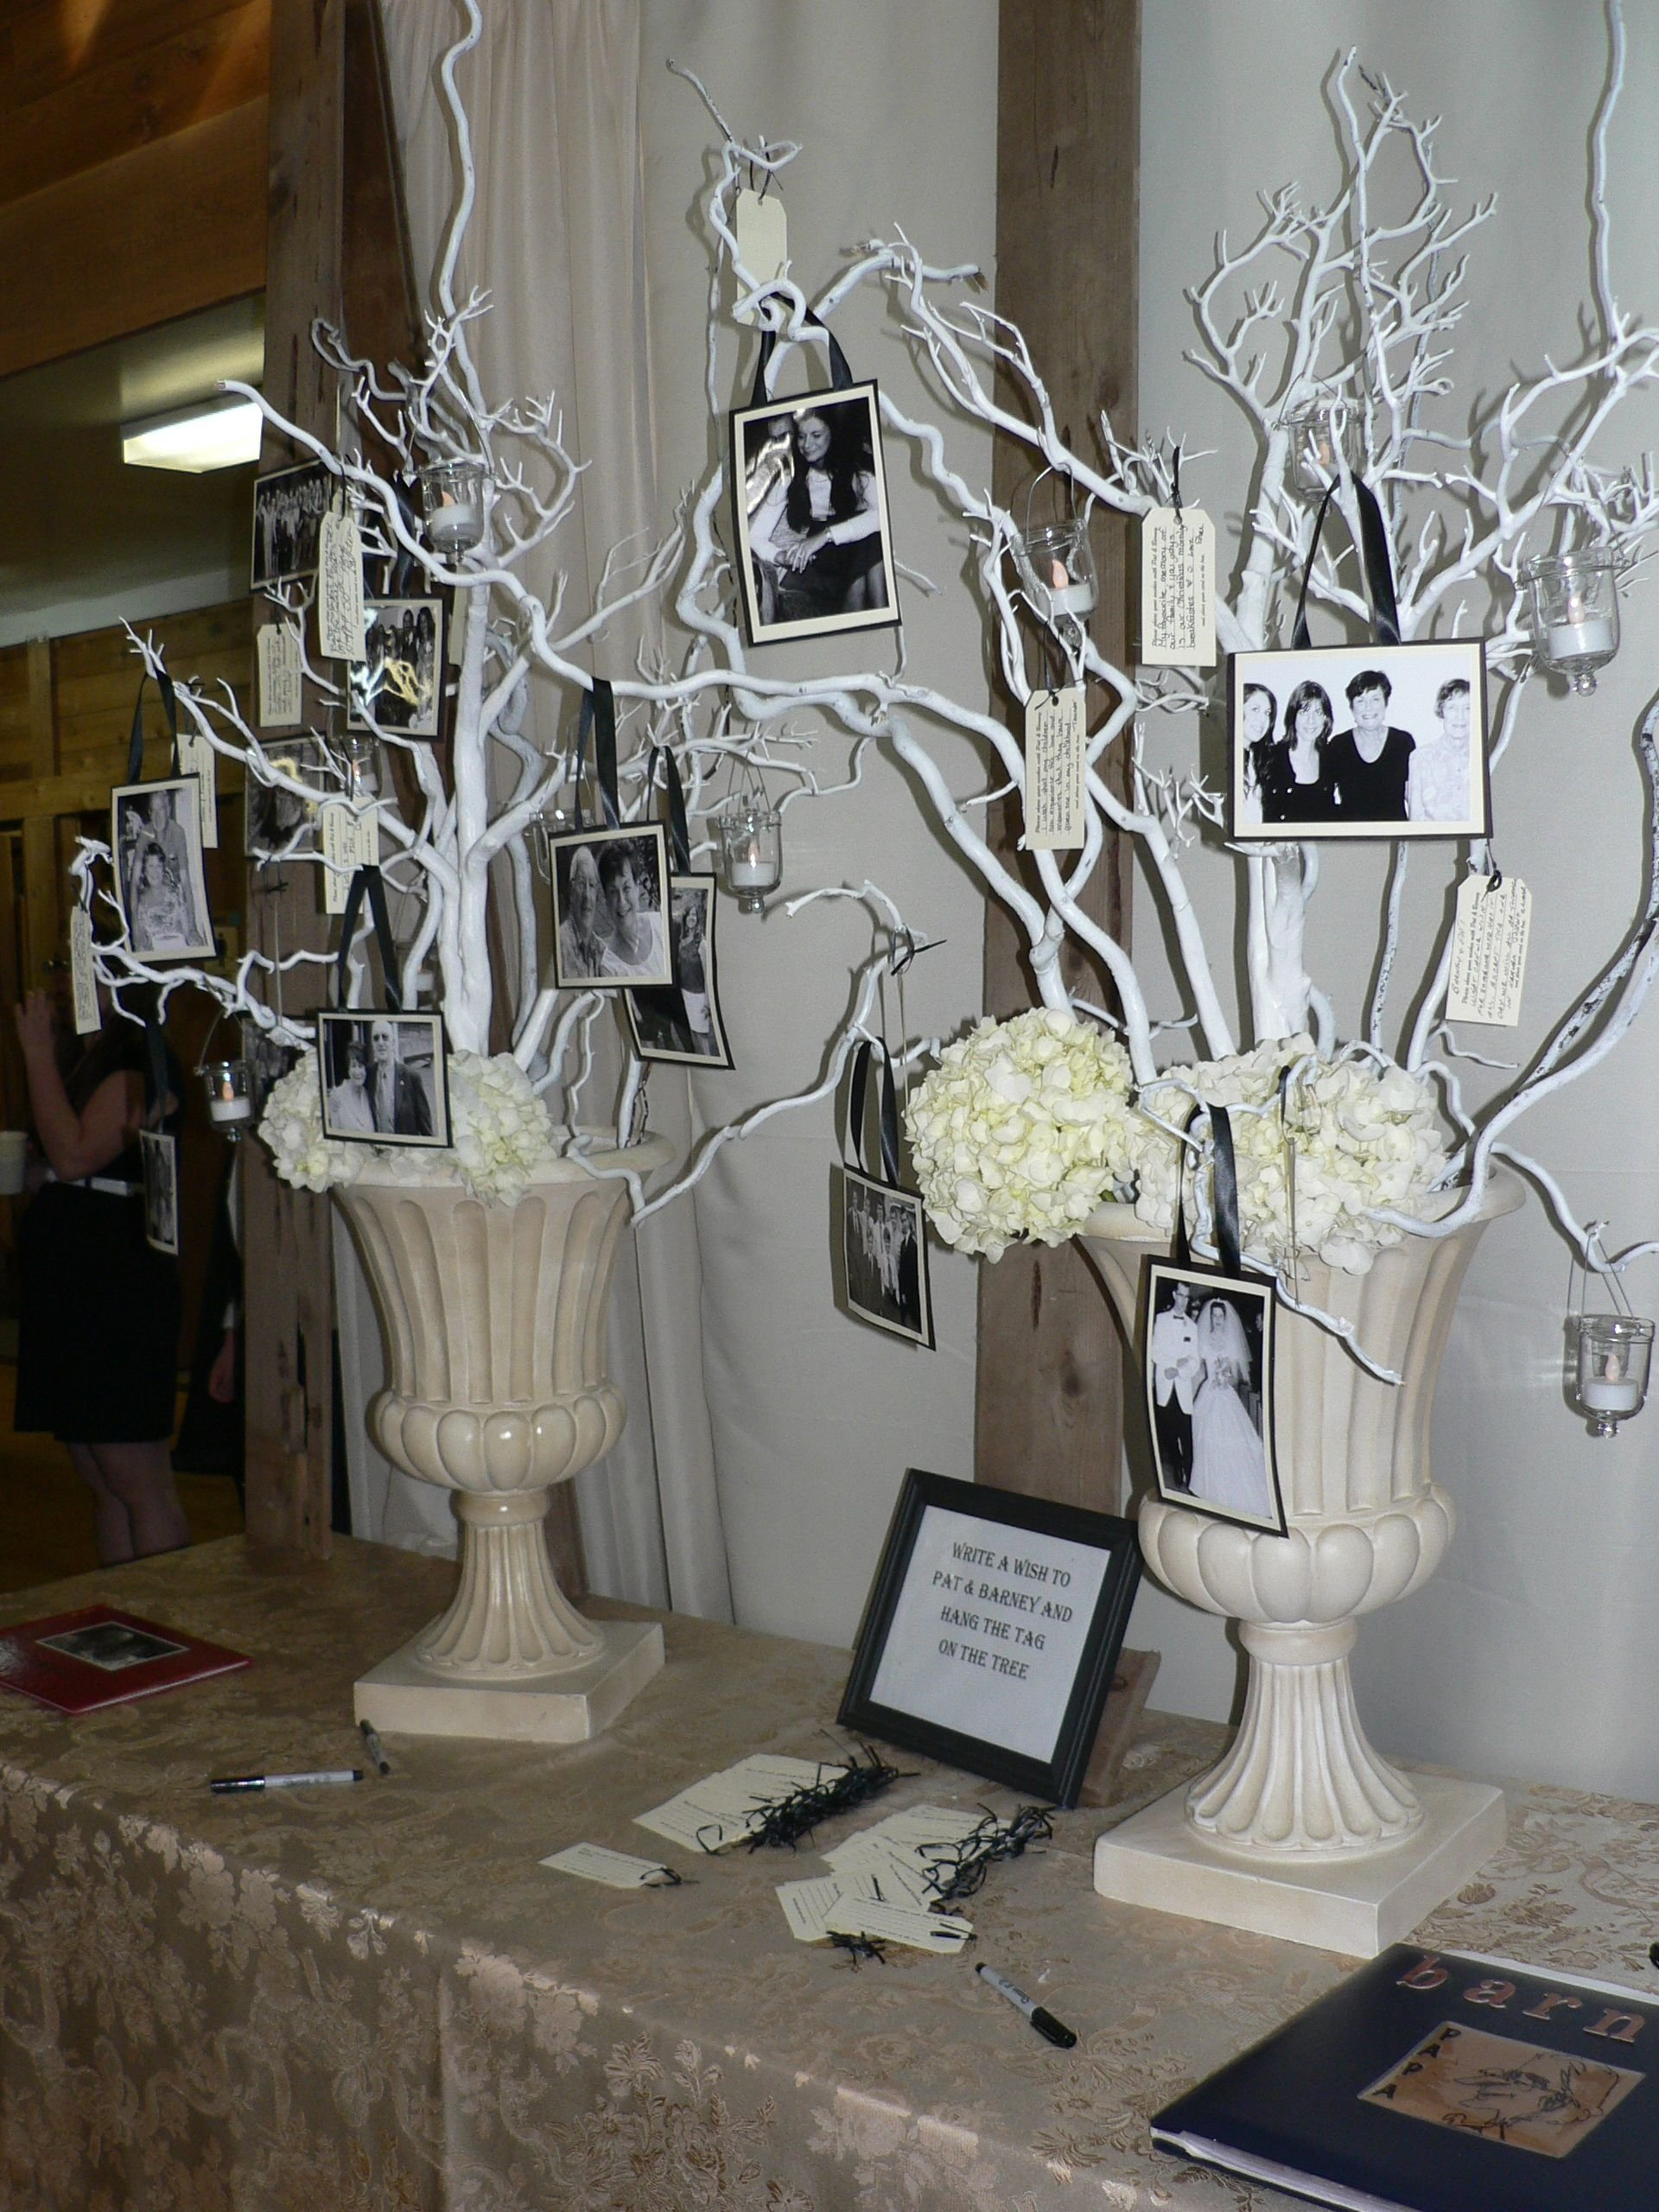 10 Awesome Anniversary Ideas On A Budget 50th anniversary party ideas on a budget 50th anniversary at 2020